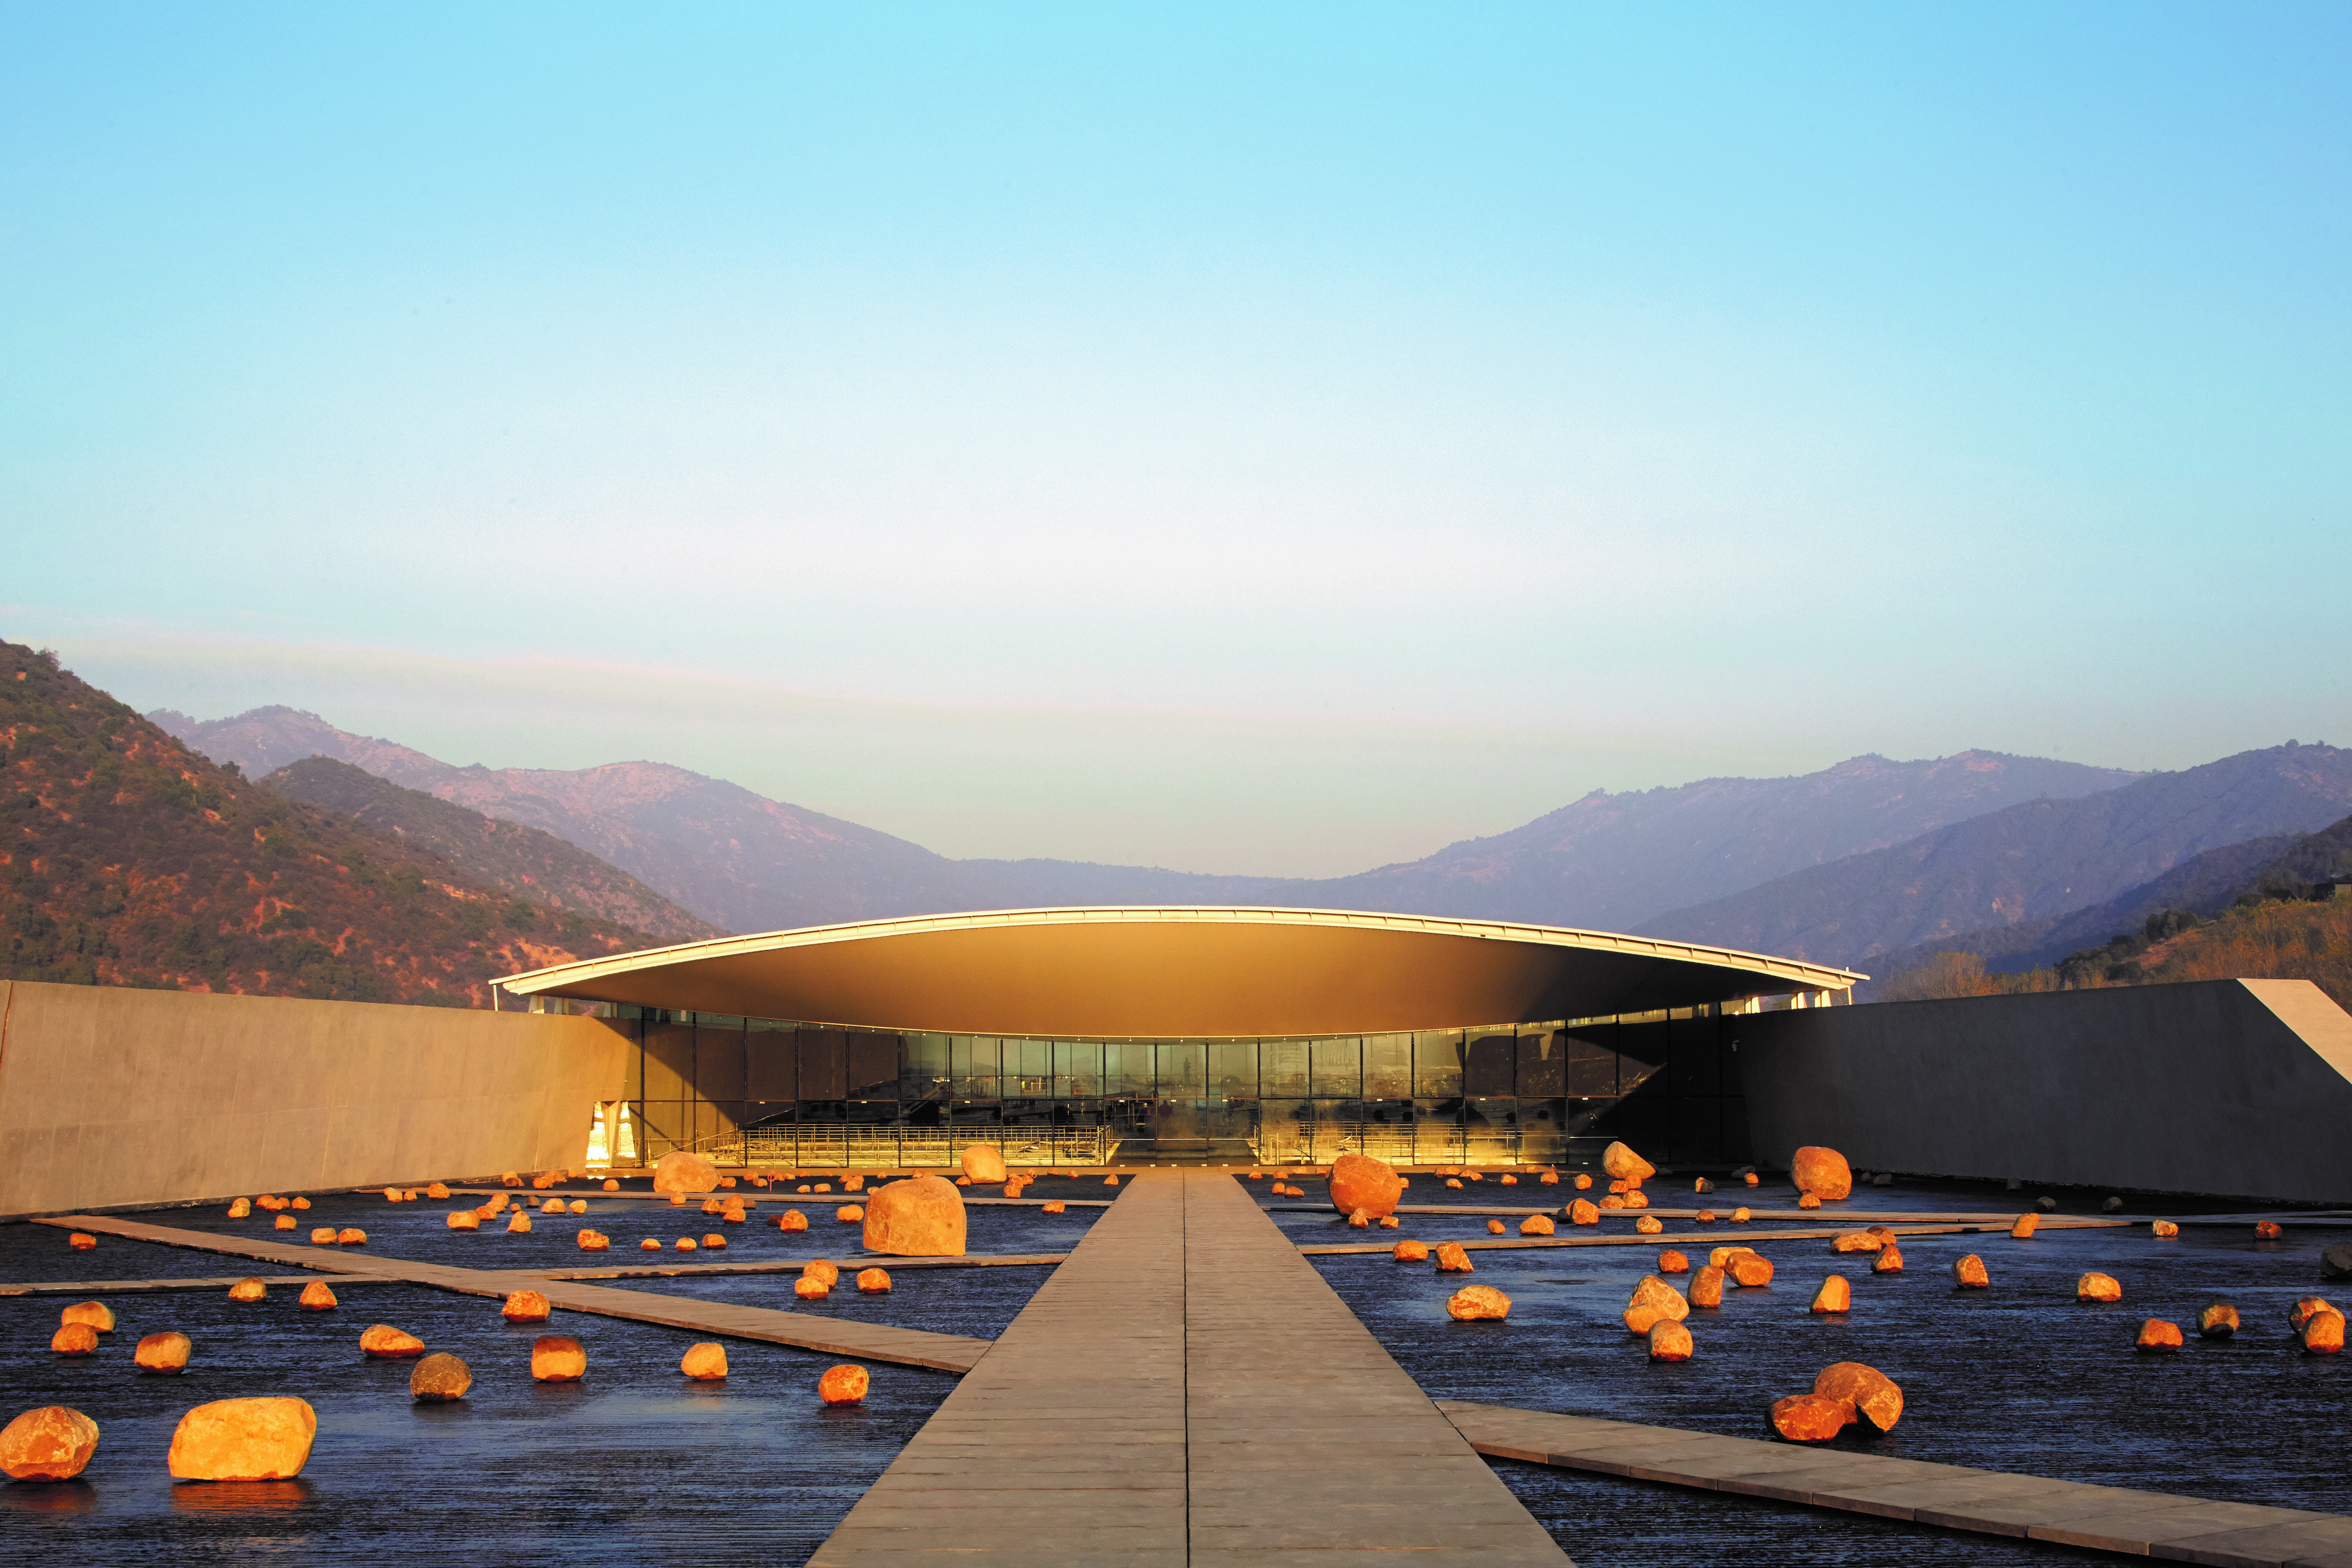 """Viña VIK – A Chilean Winery Putting the """"Whole"""" into """"Holistic"""""""